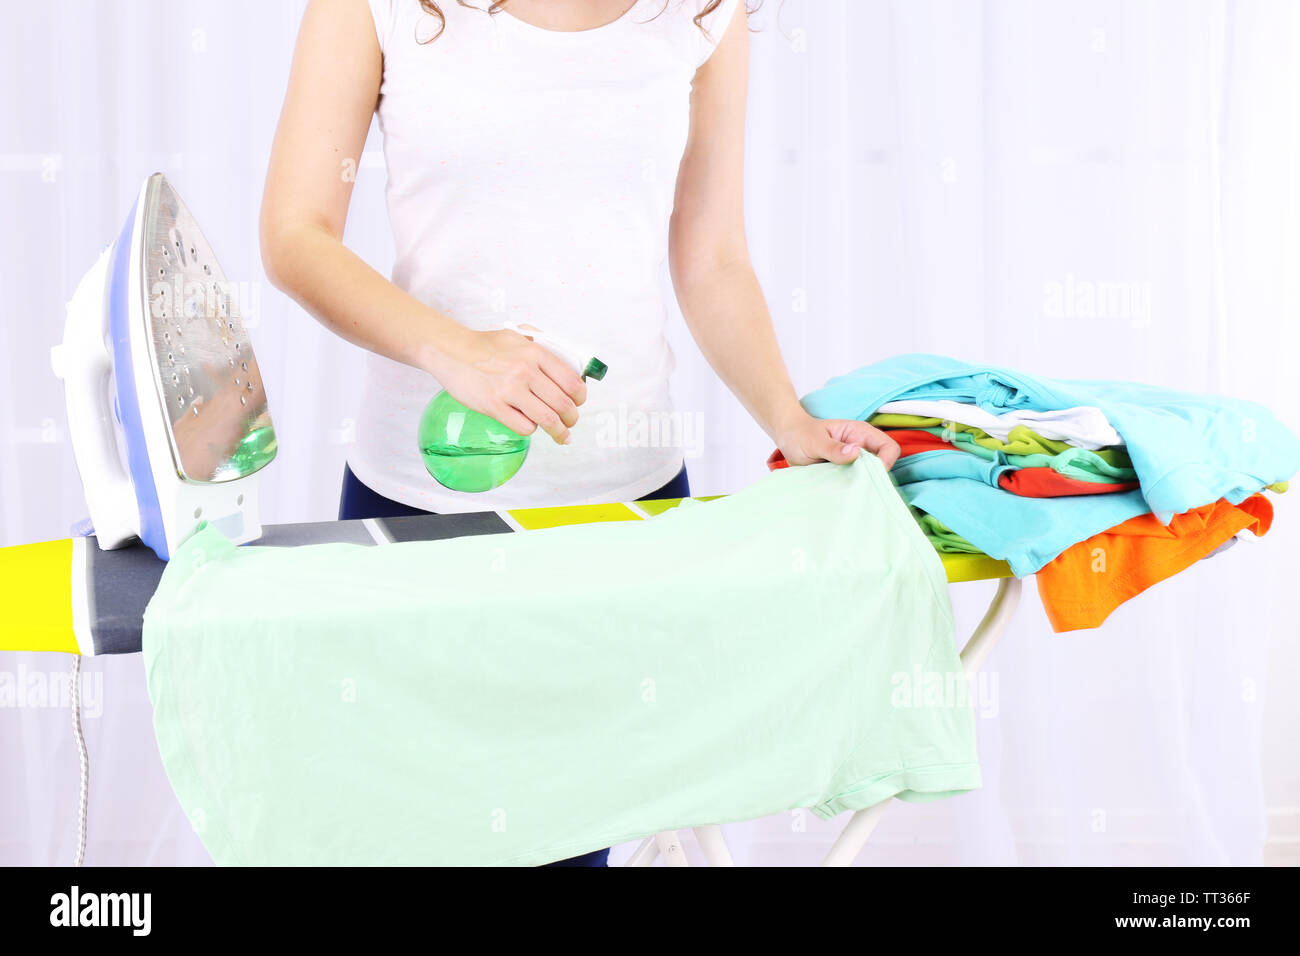 Woman ironing clothes on ironing board, close-up, on light background - Stock Image